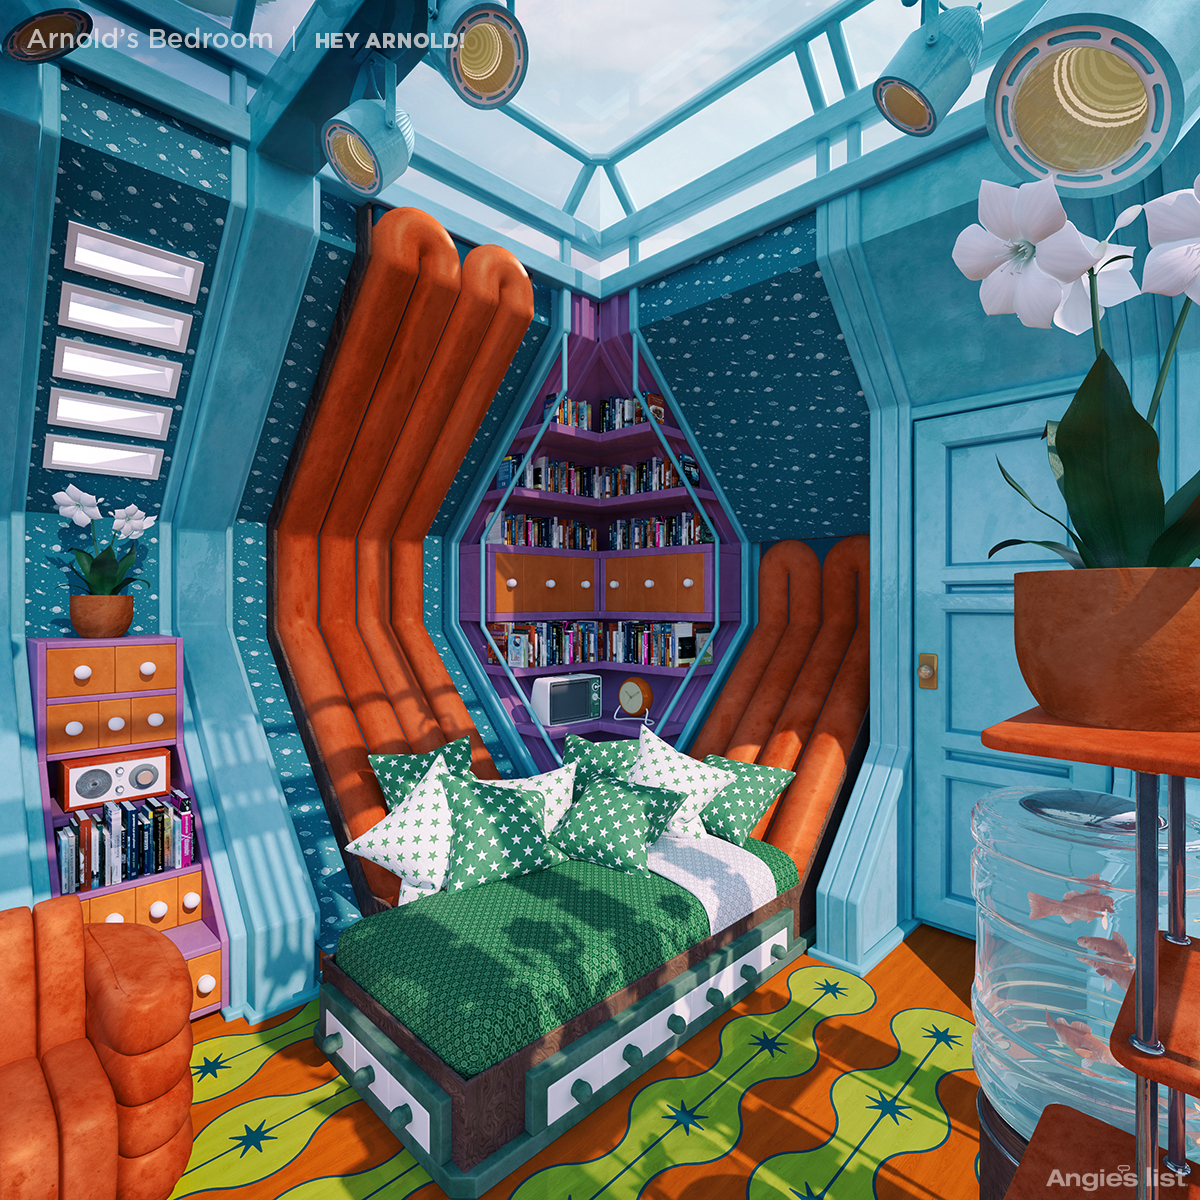 Arnold's Bedroom